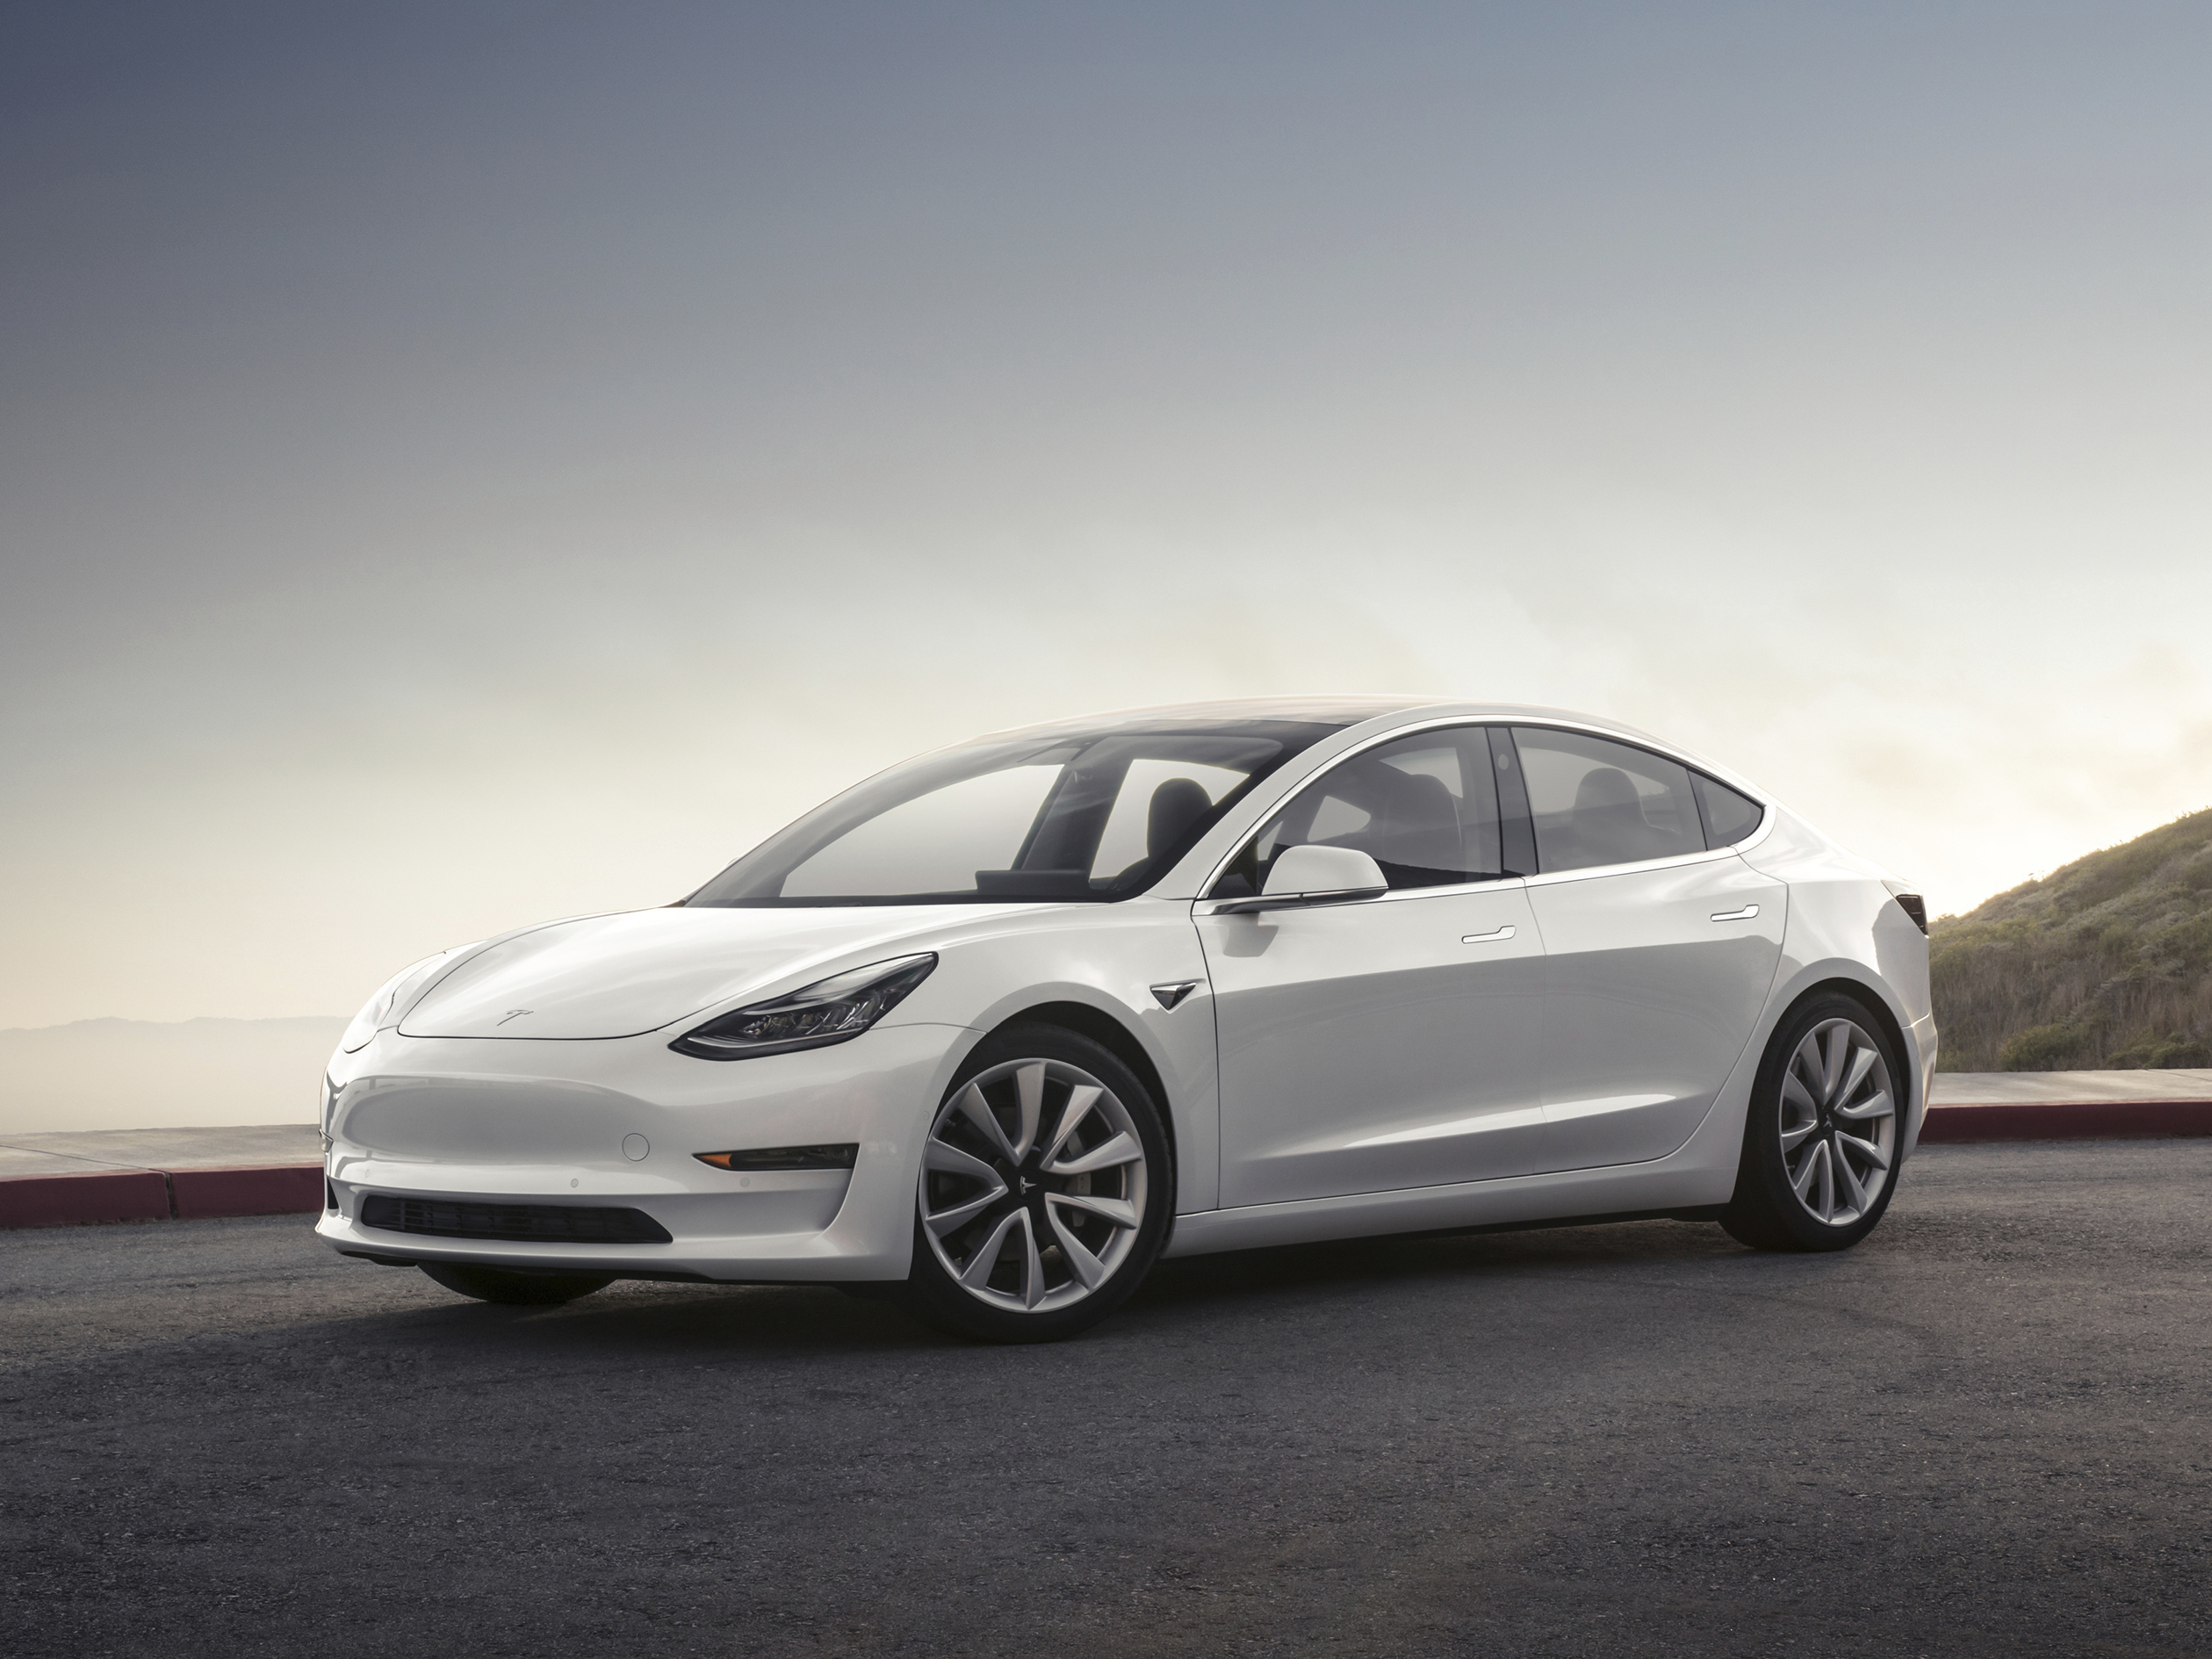 Tesla Model 3 is far behind the goal